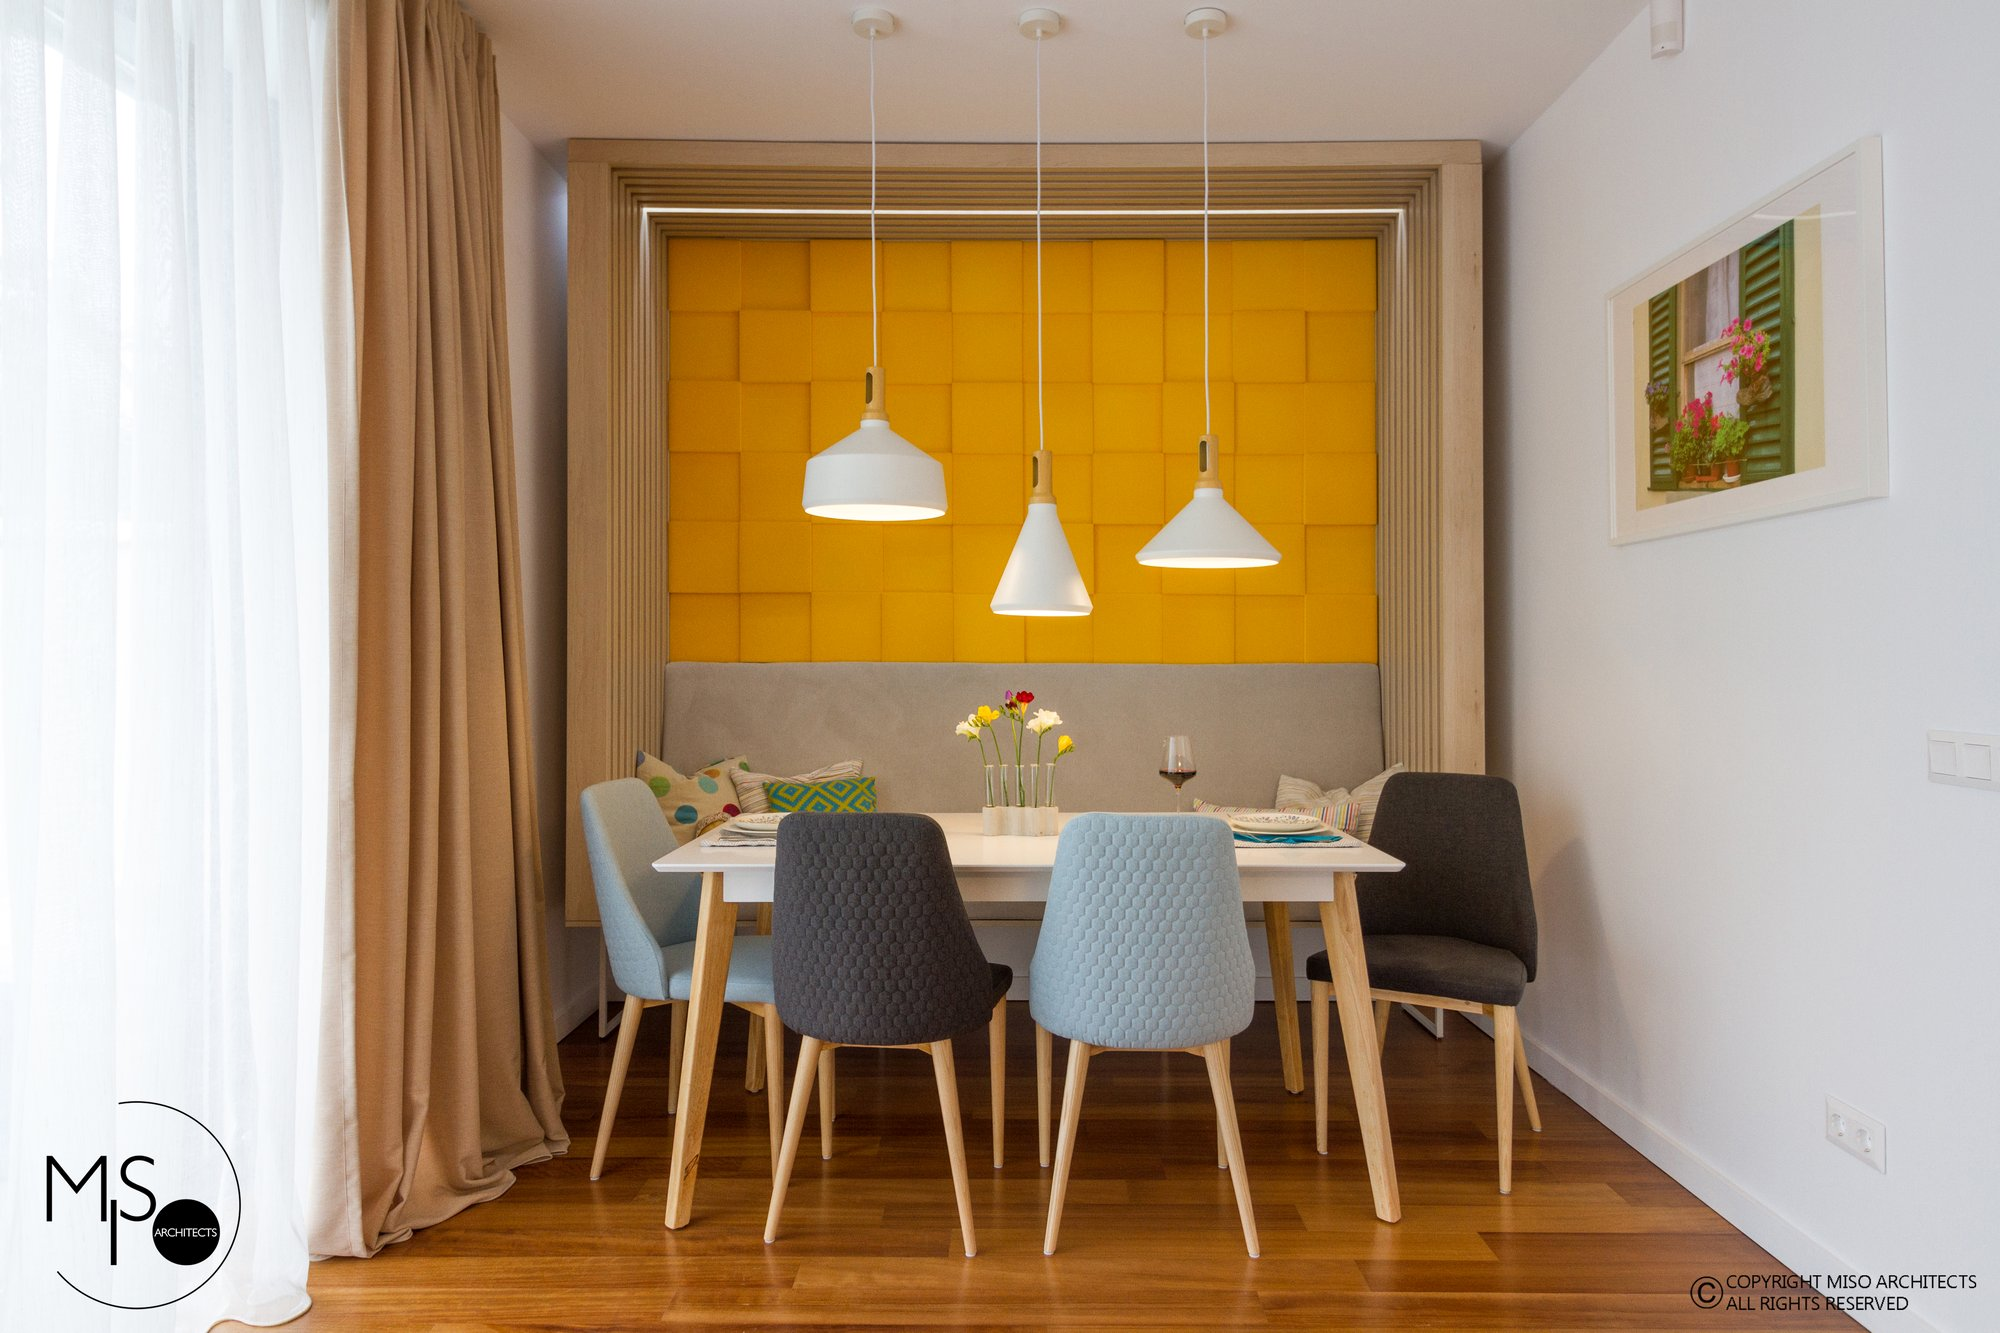 mobilier-dining-the-home-la-forma.jpg